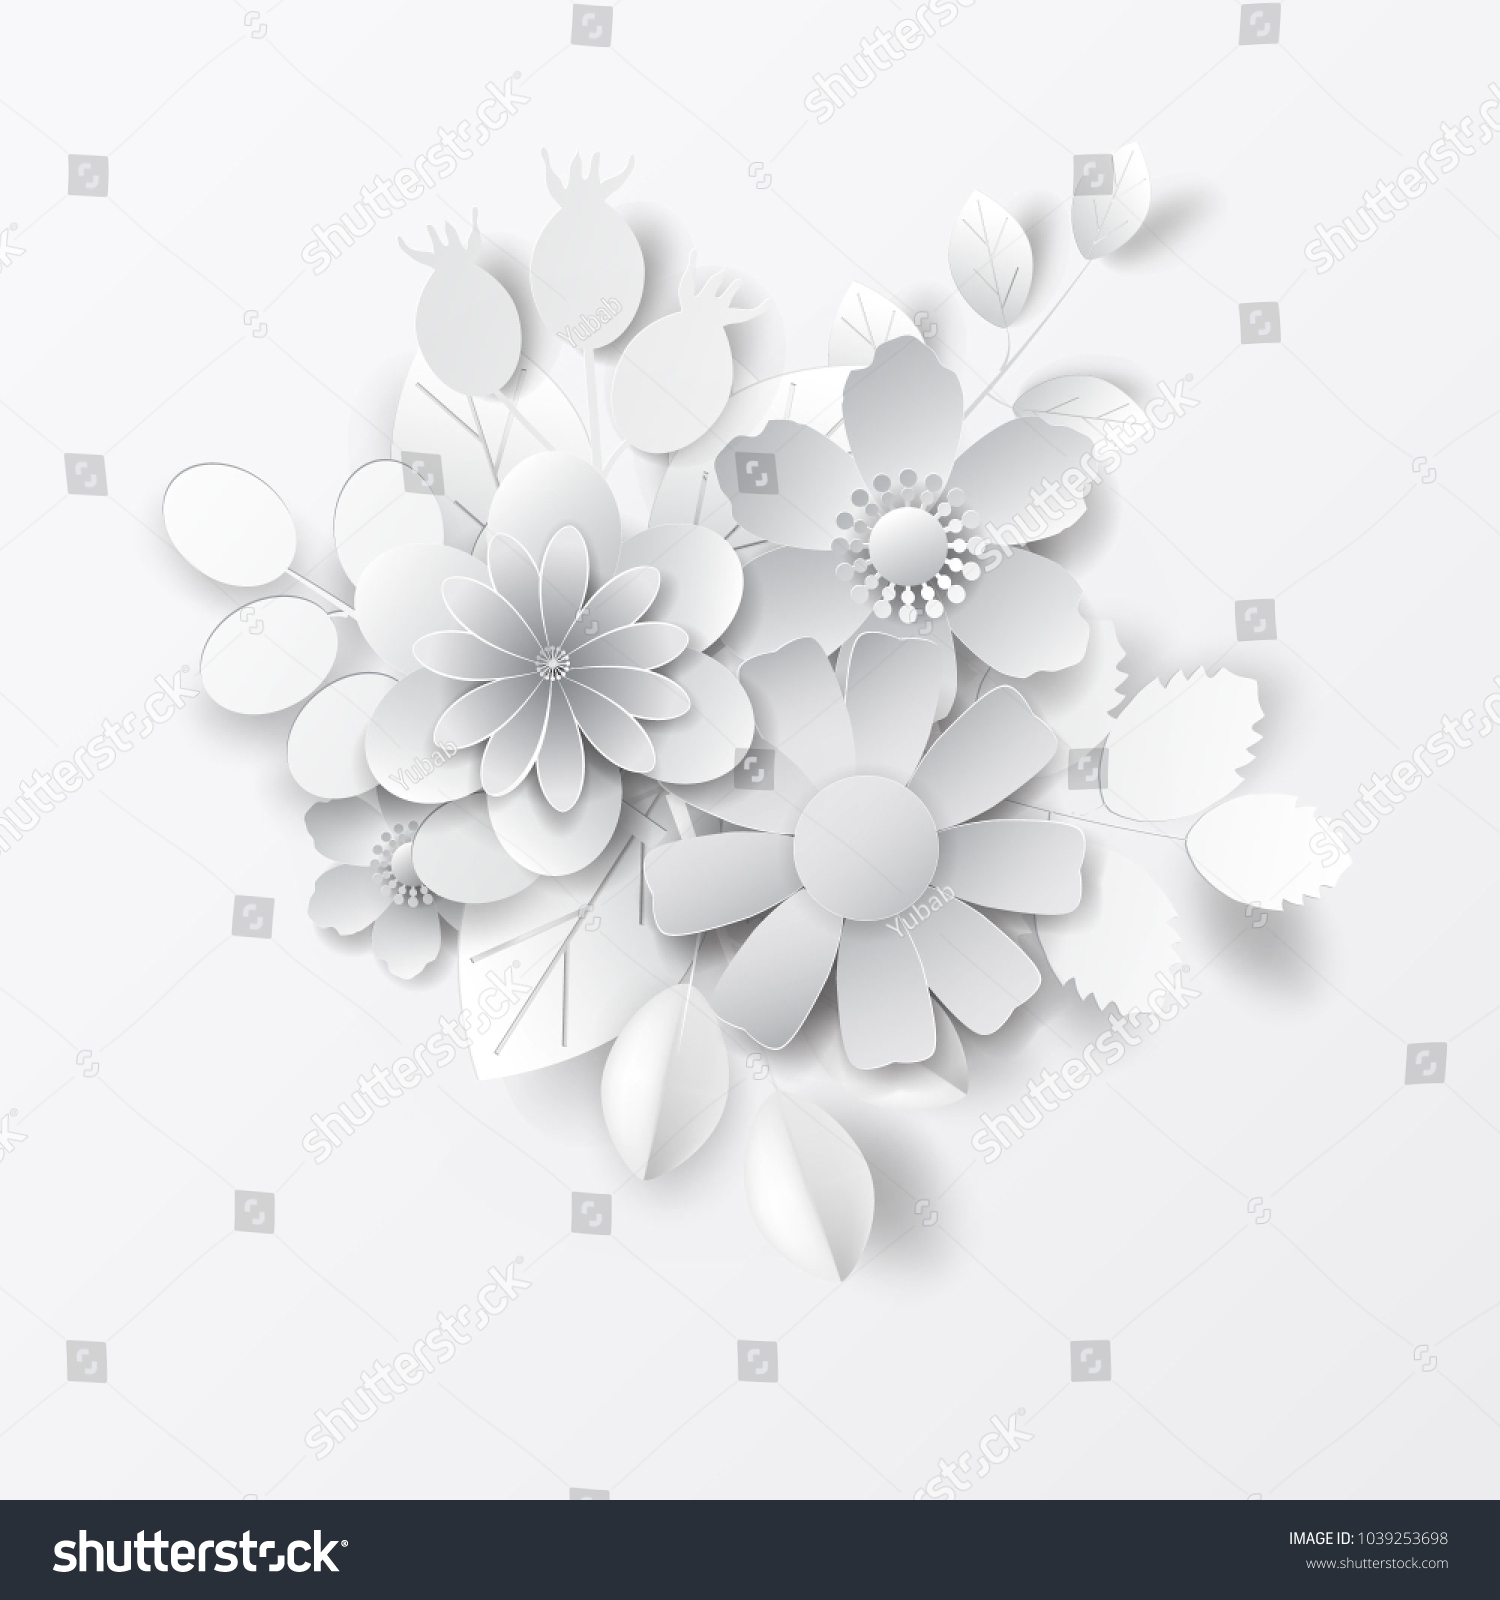 Paper Art Flowers Background Vector Stock Stock Vector Royalty Free